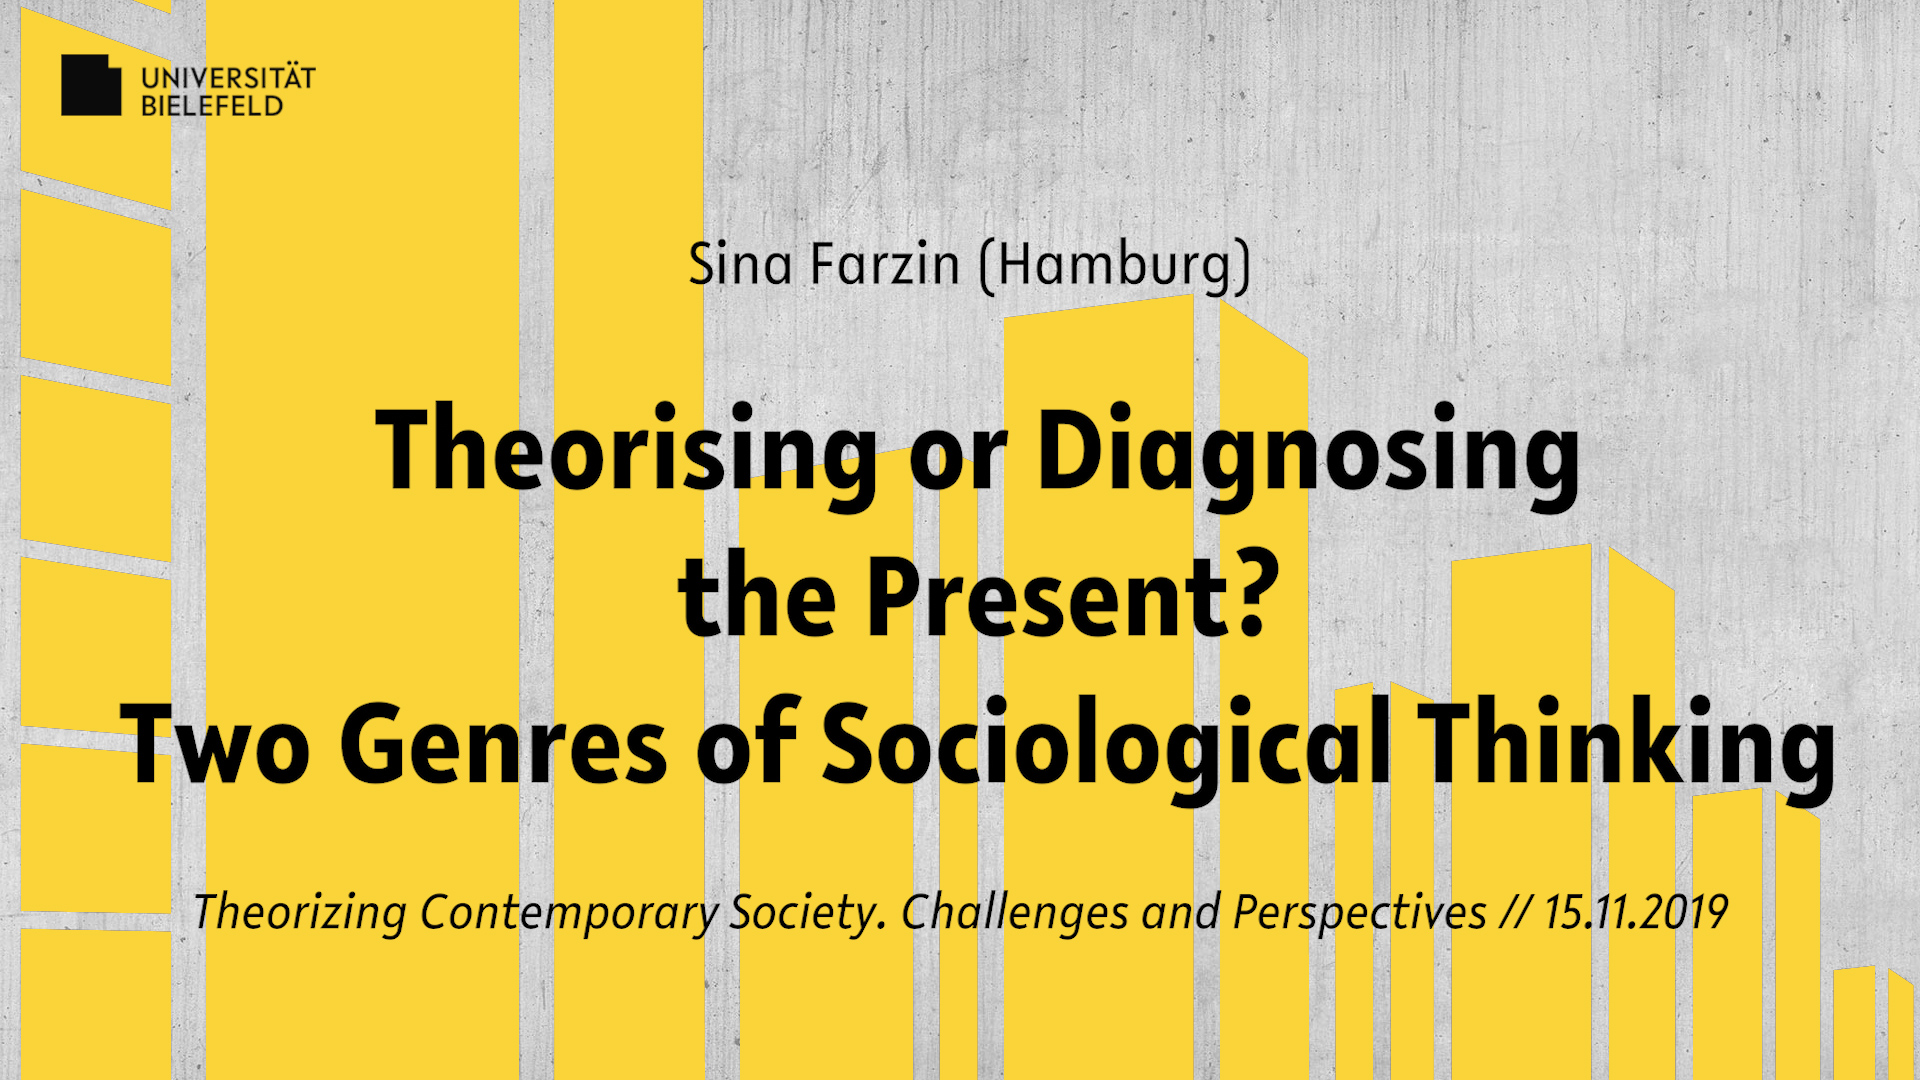 Theorising or Diagnosing the Present? Two Genres of Sociological Thinking